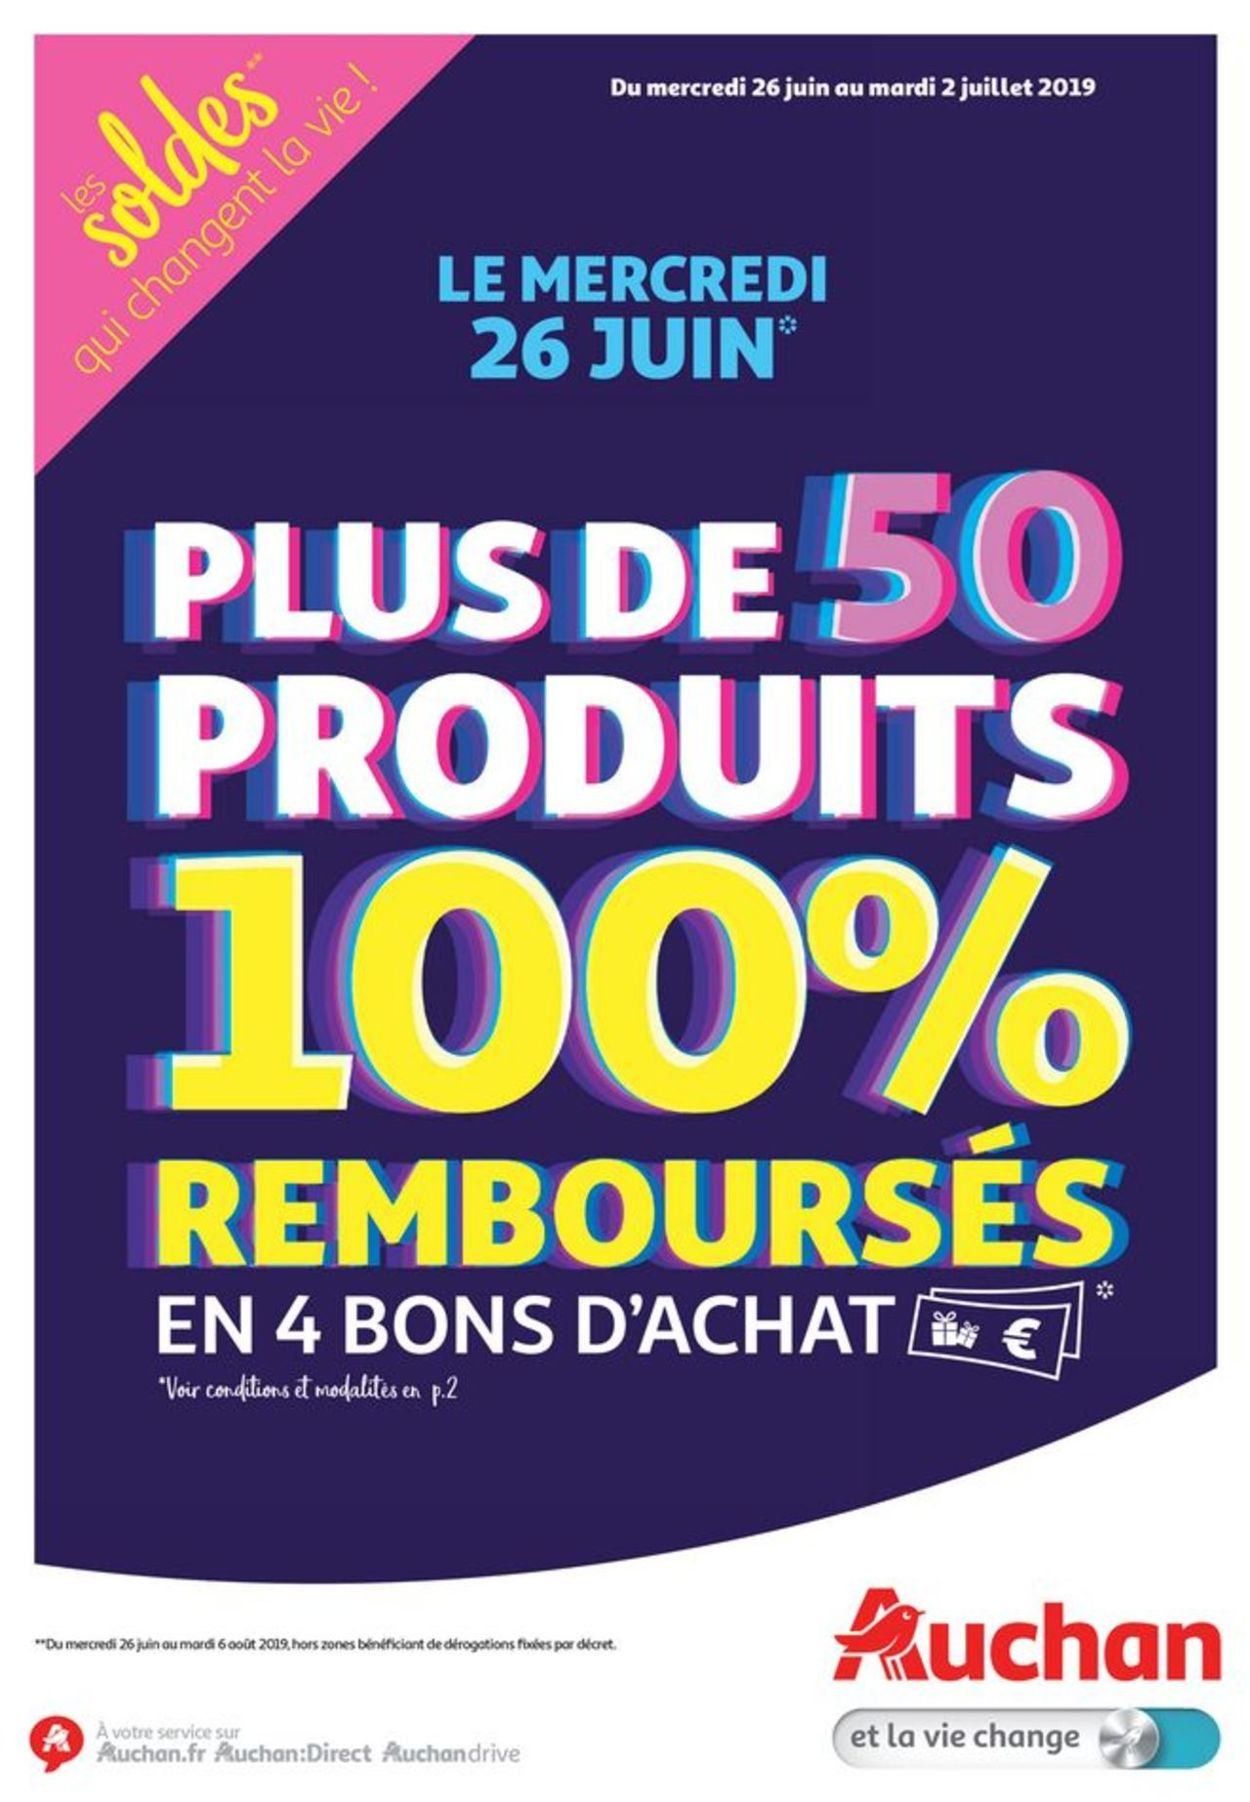 Catalogue Auchan 26 Juin 2019 : catalogue, auchan, Auchan, Catalogue, Actuel, 26.06, 02.07.2019, Catalogue-24.com